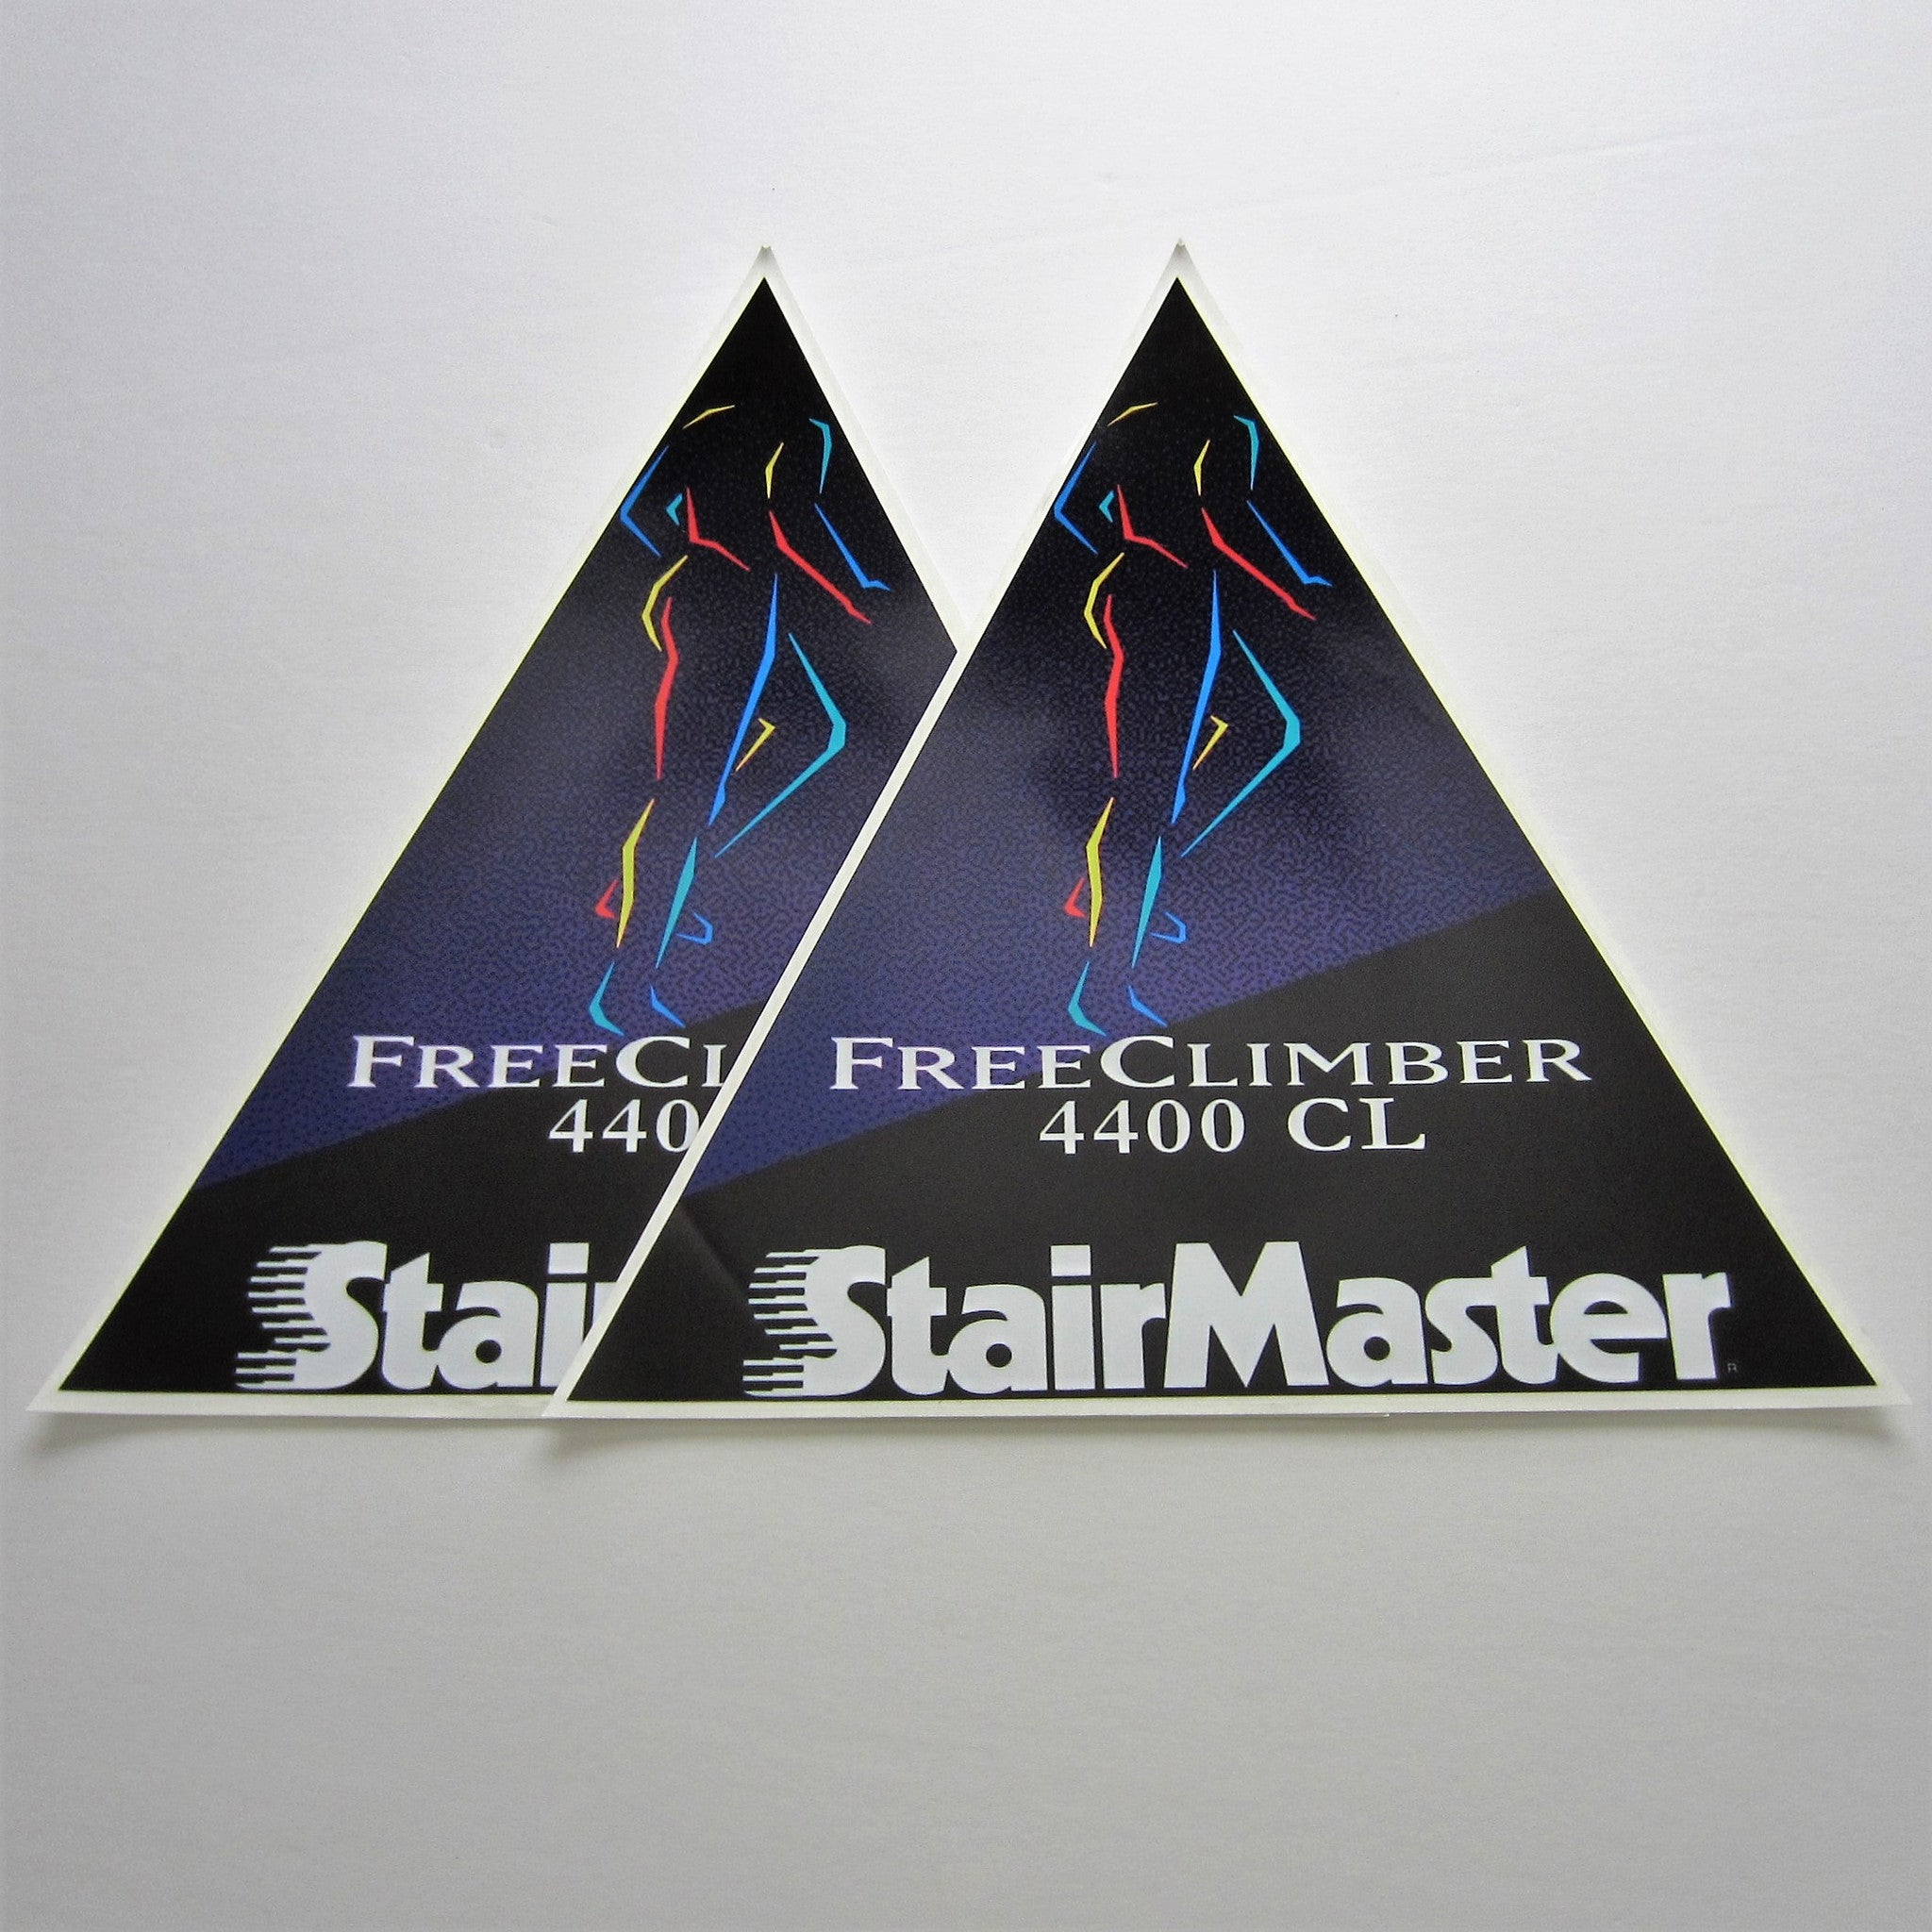 StairMaster 4400CL Side Shroud Decals w/ SM (Set of 2)